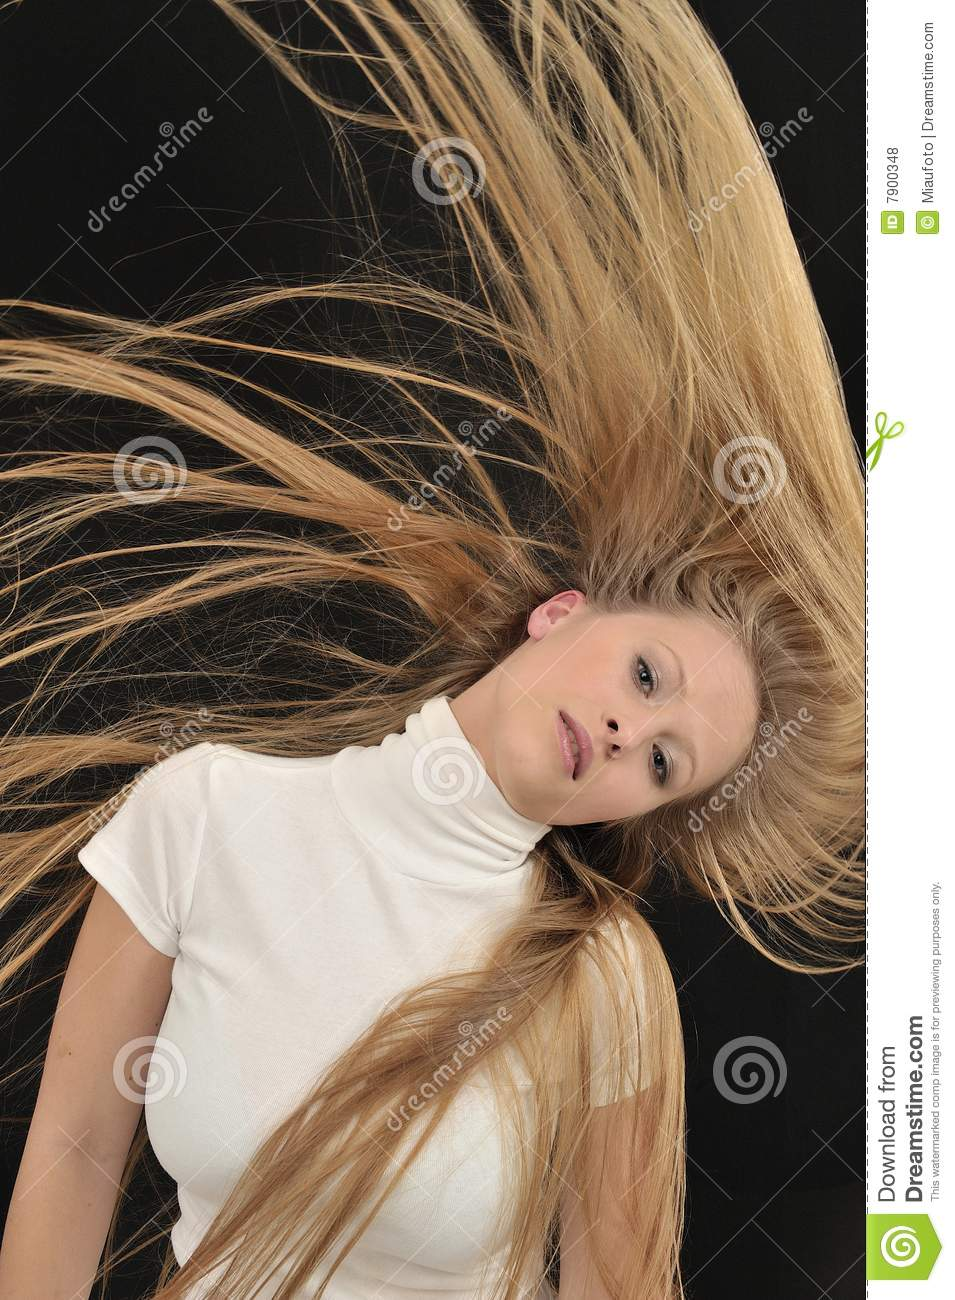 Sexy Blond Long Hair Teen Age Girl Royalty Free Stock